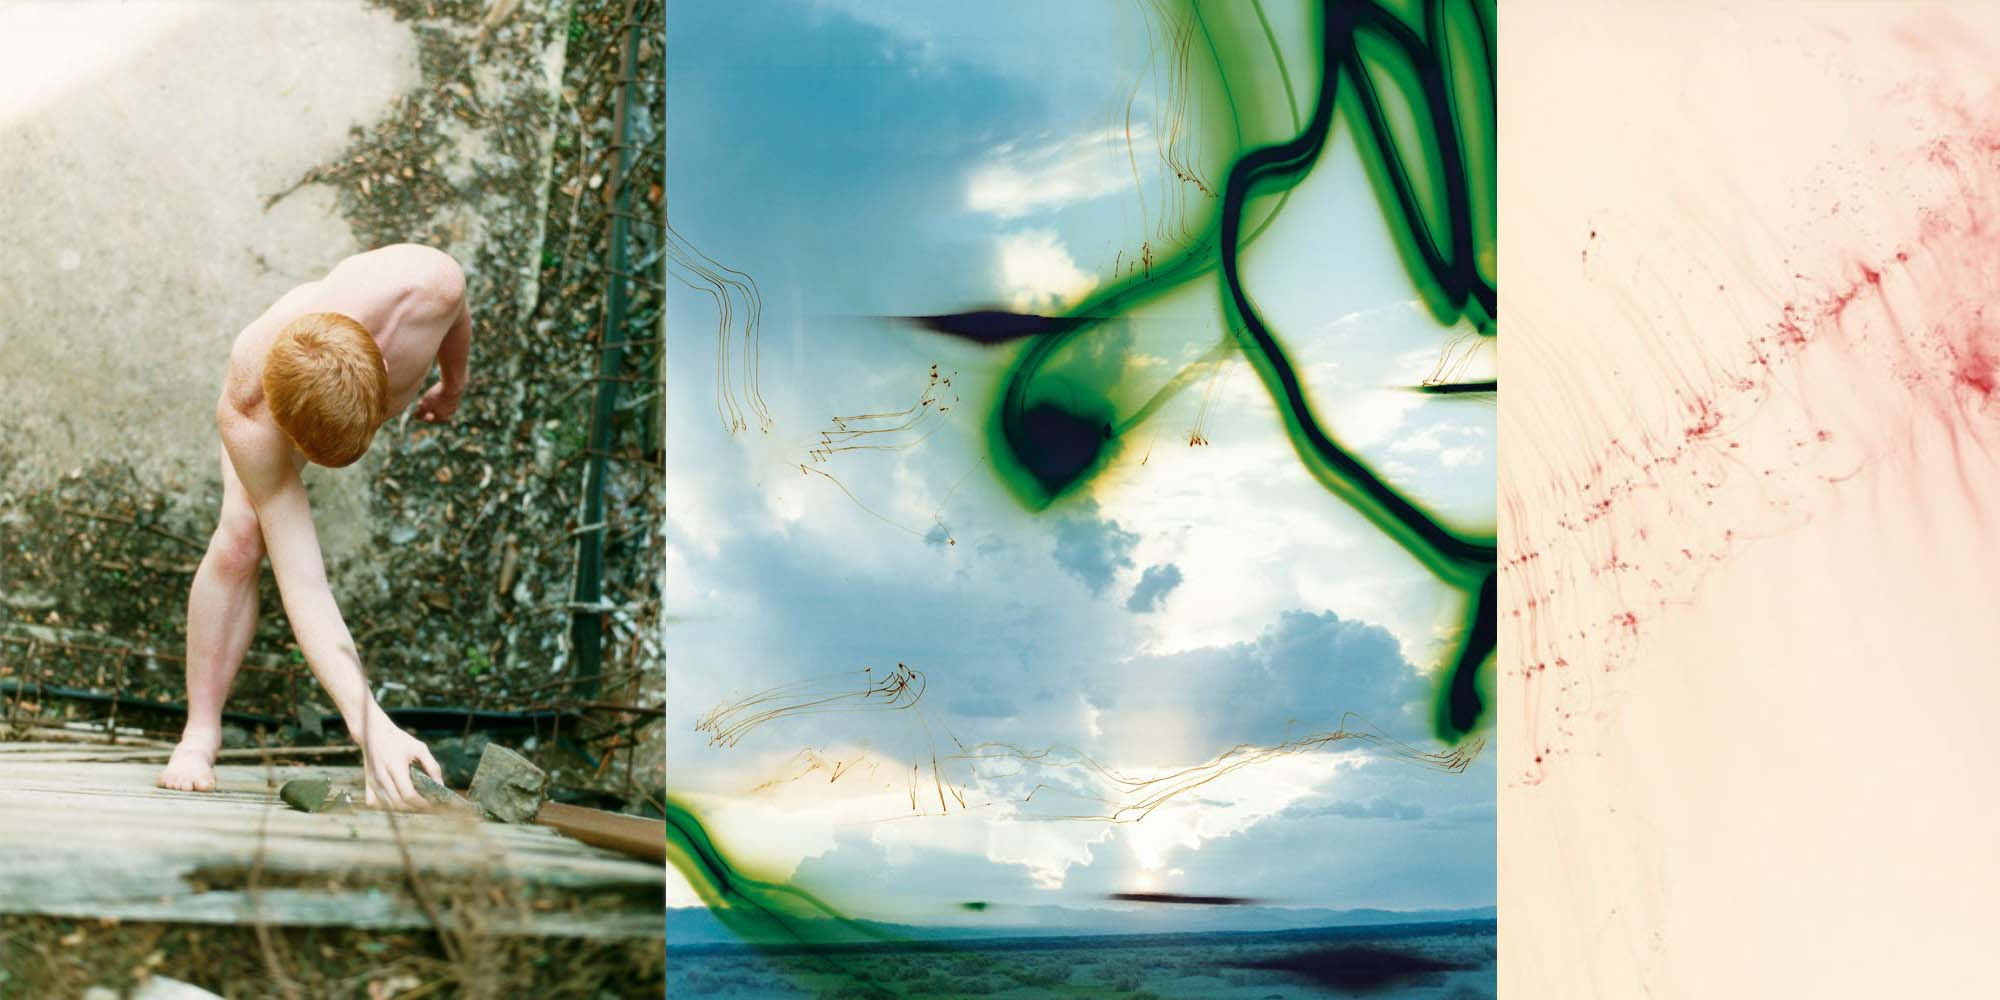 wolfgang tillmans essay Your ultimate guide to wolfgang tillmans photography da-zed guides in his essay, 'picture possible lives: the work of wolfgang tillmans'.